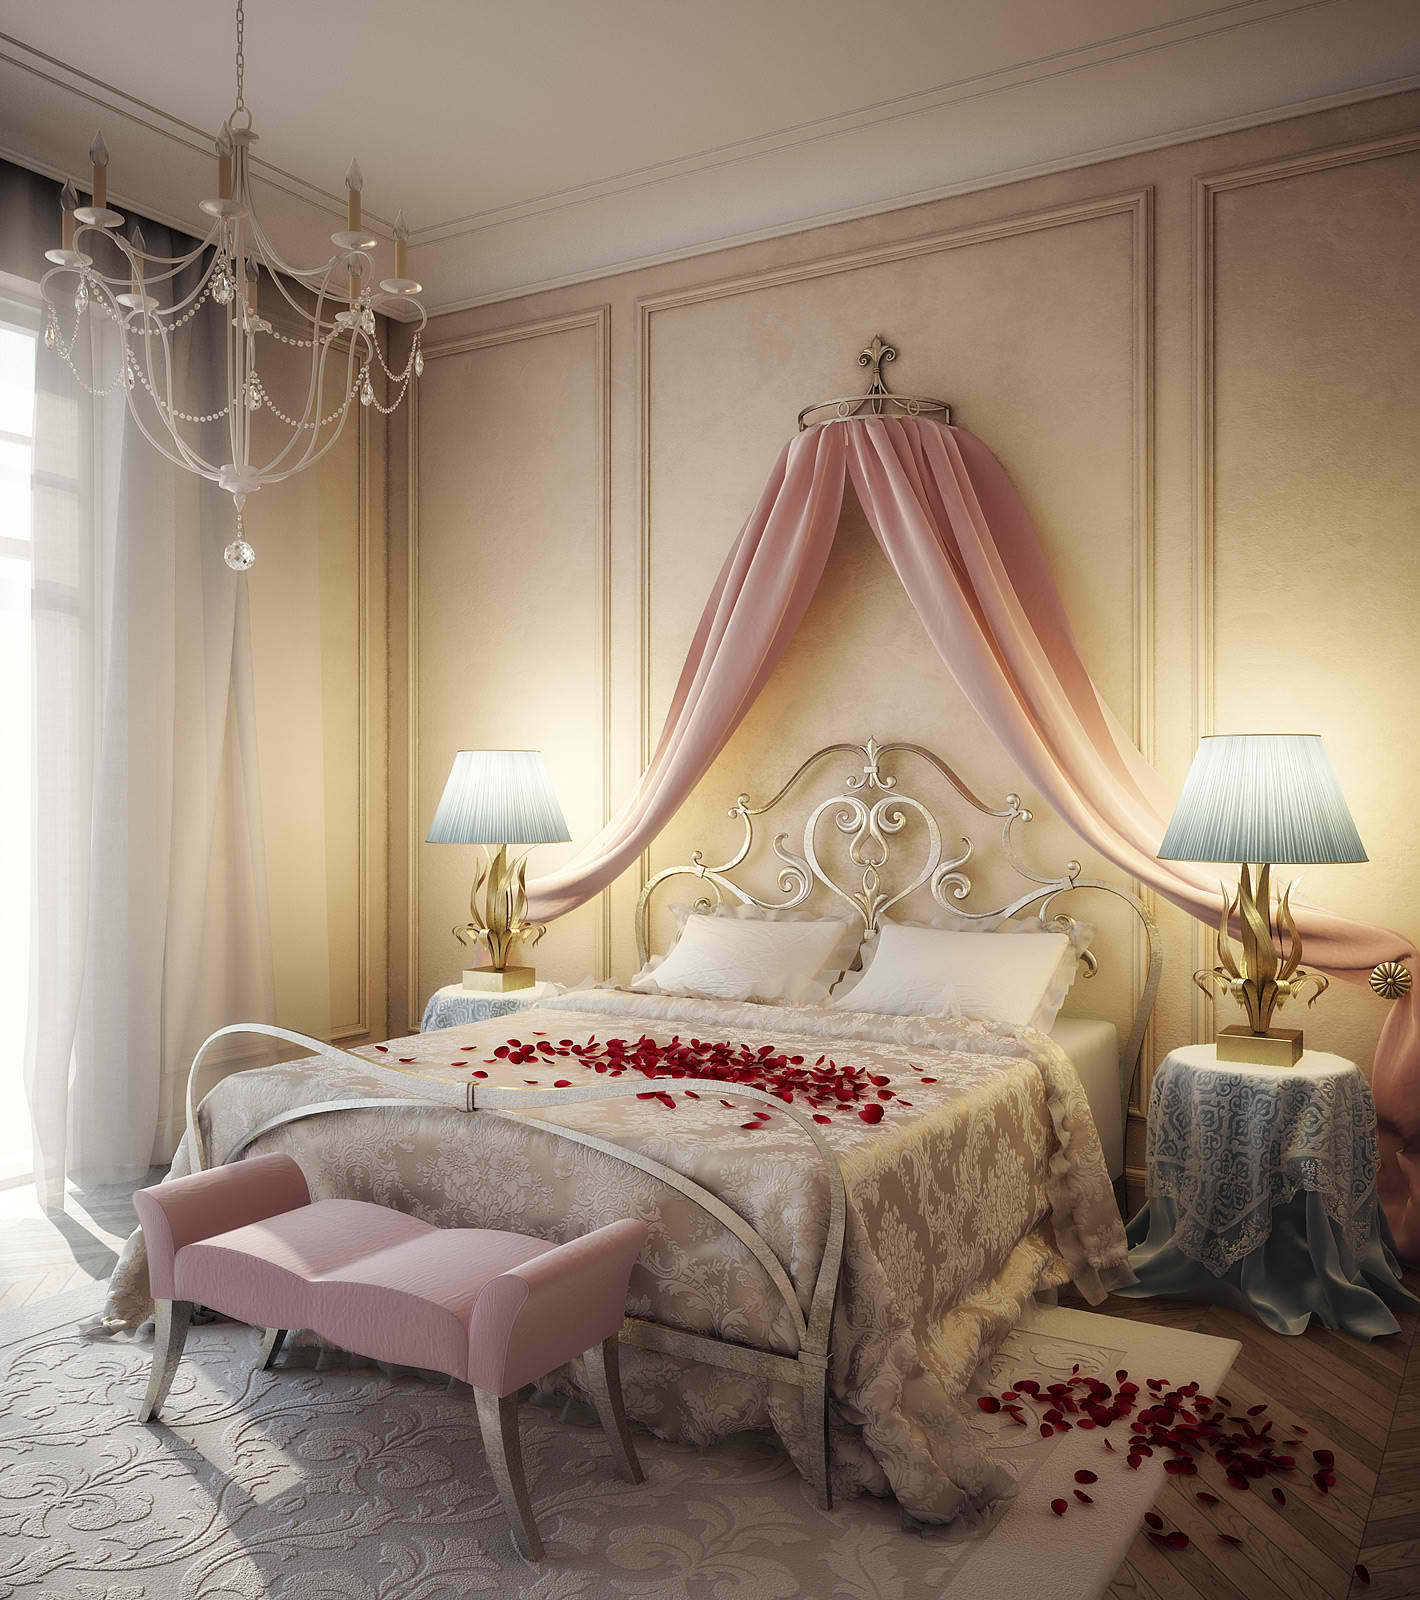 20 romantic bedroom ideas decoholic for Bed room decoration ideas